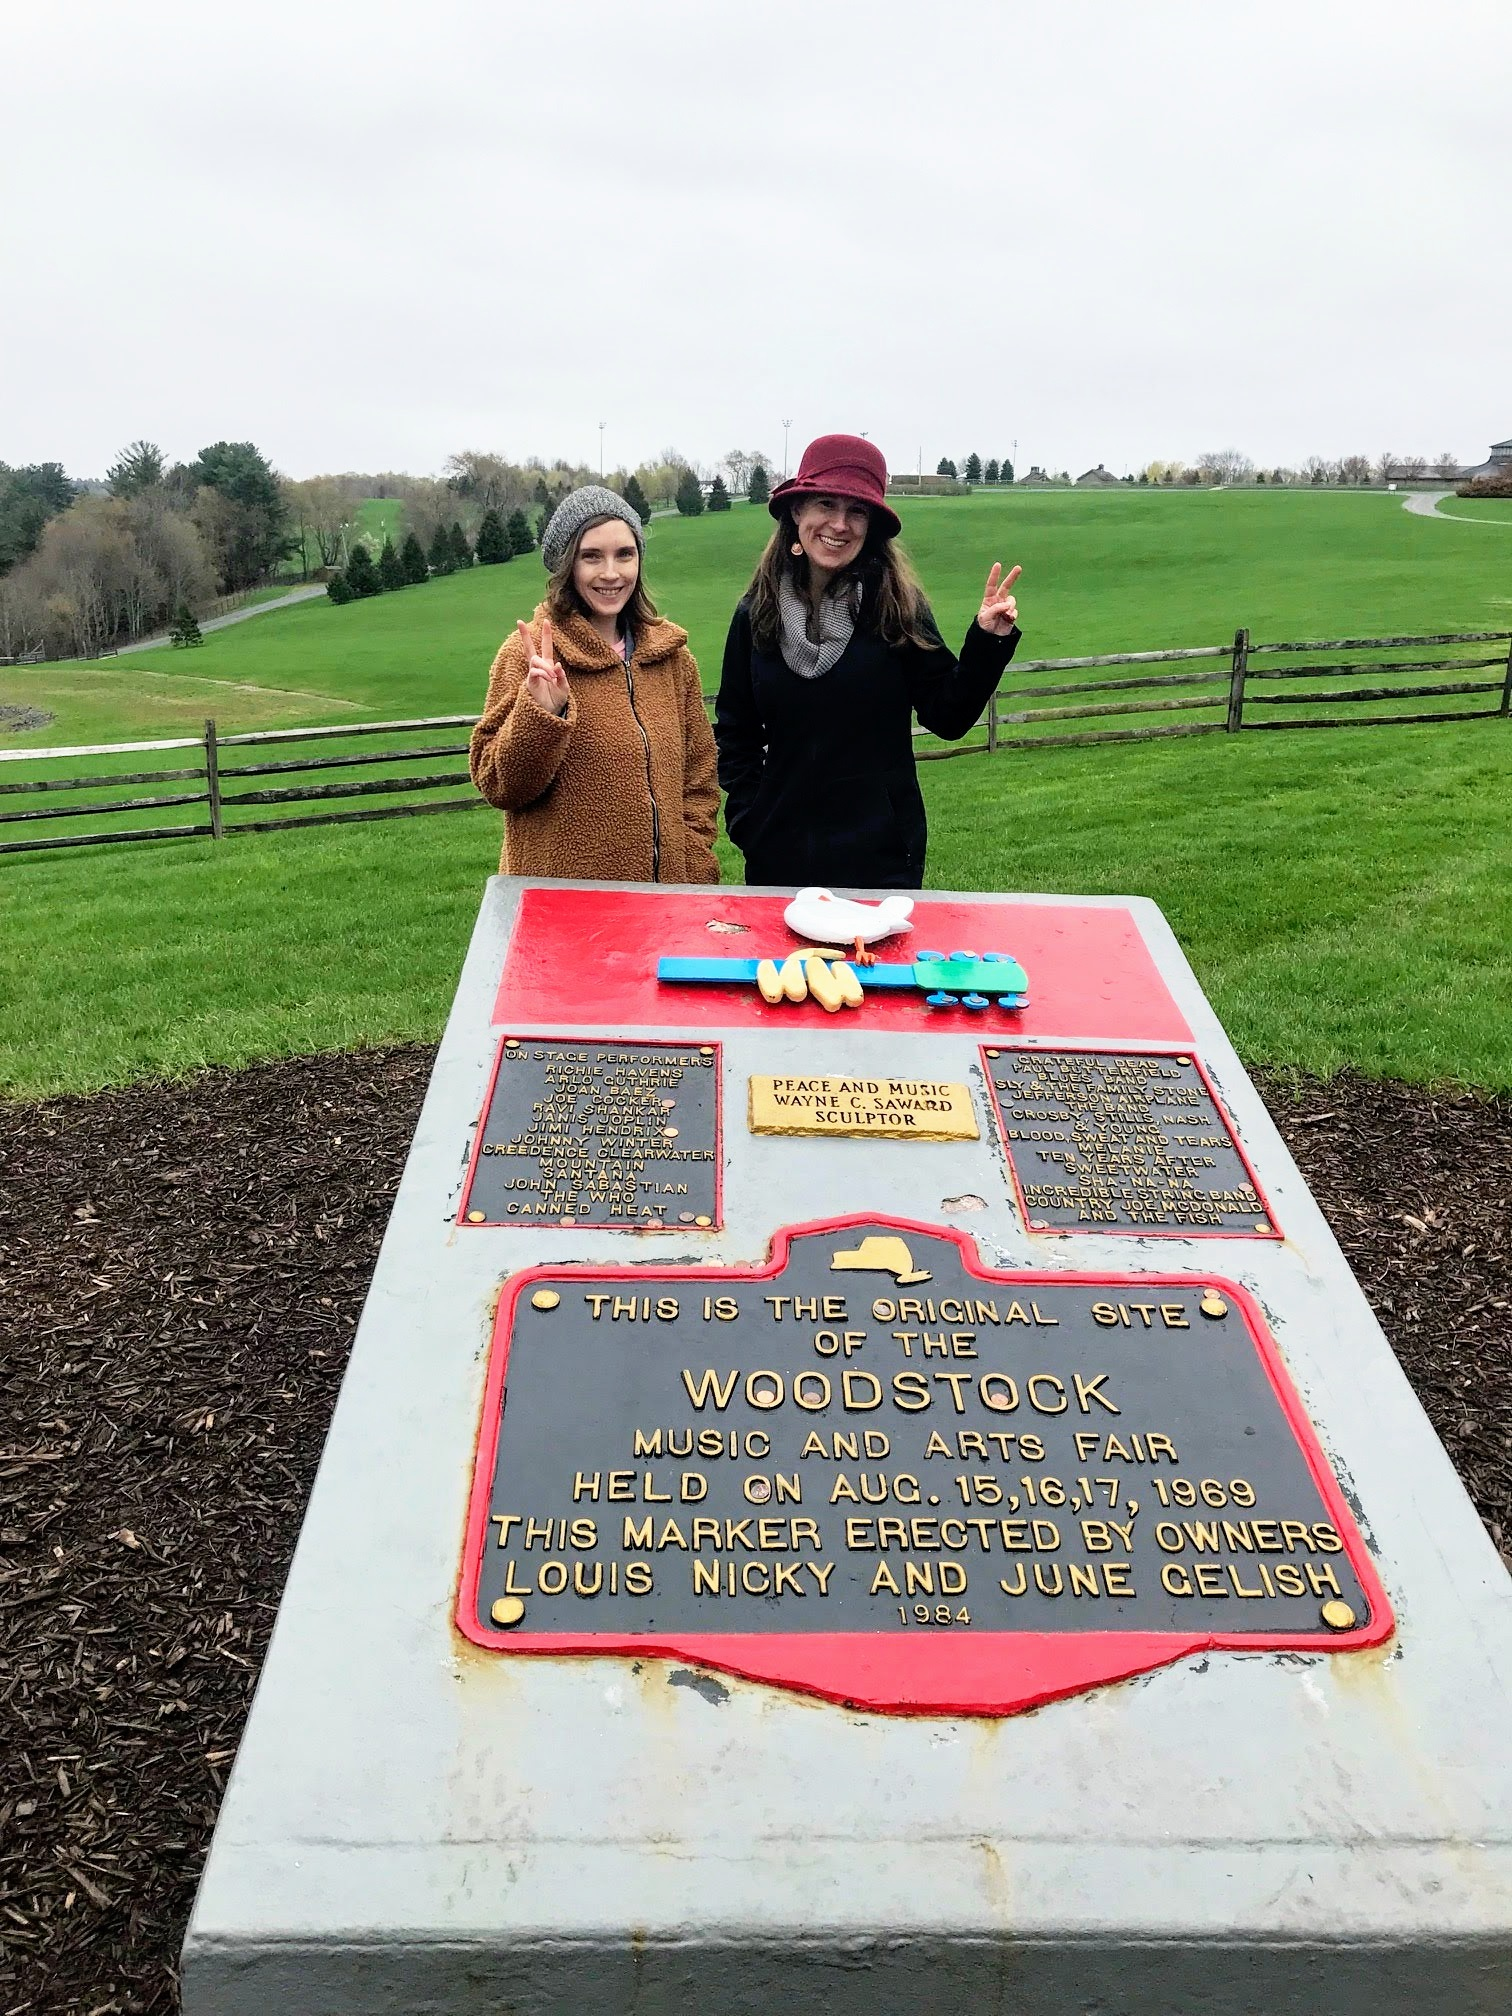 The League's Katy Peace and Erin Tobin pose with the Woodstock site marker